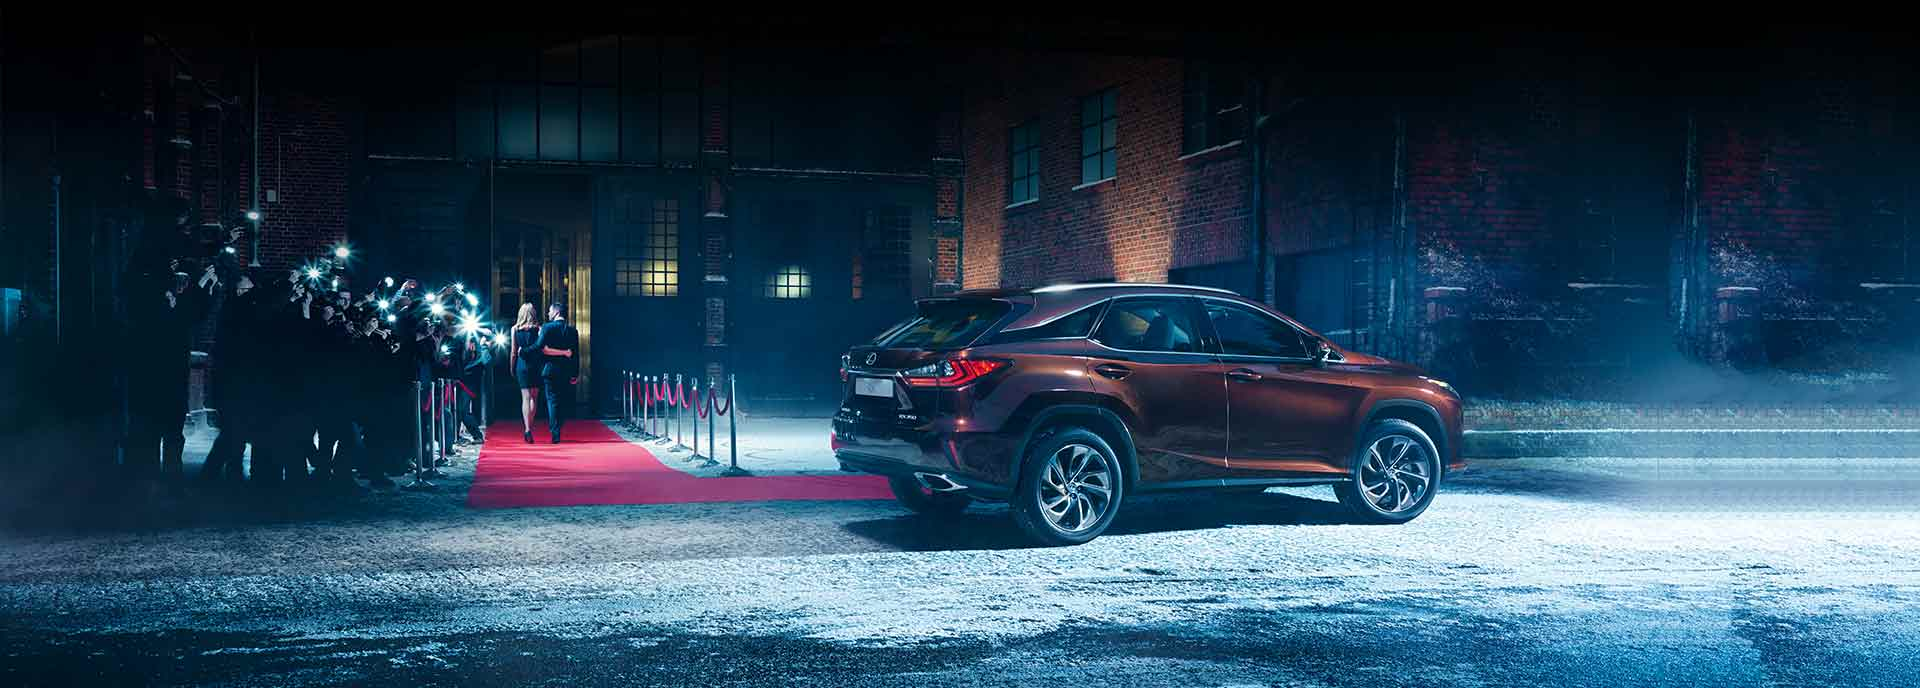 Lexus Red Carpet Treatment man open deur voor lexusrijder